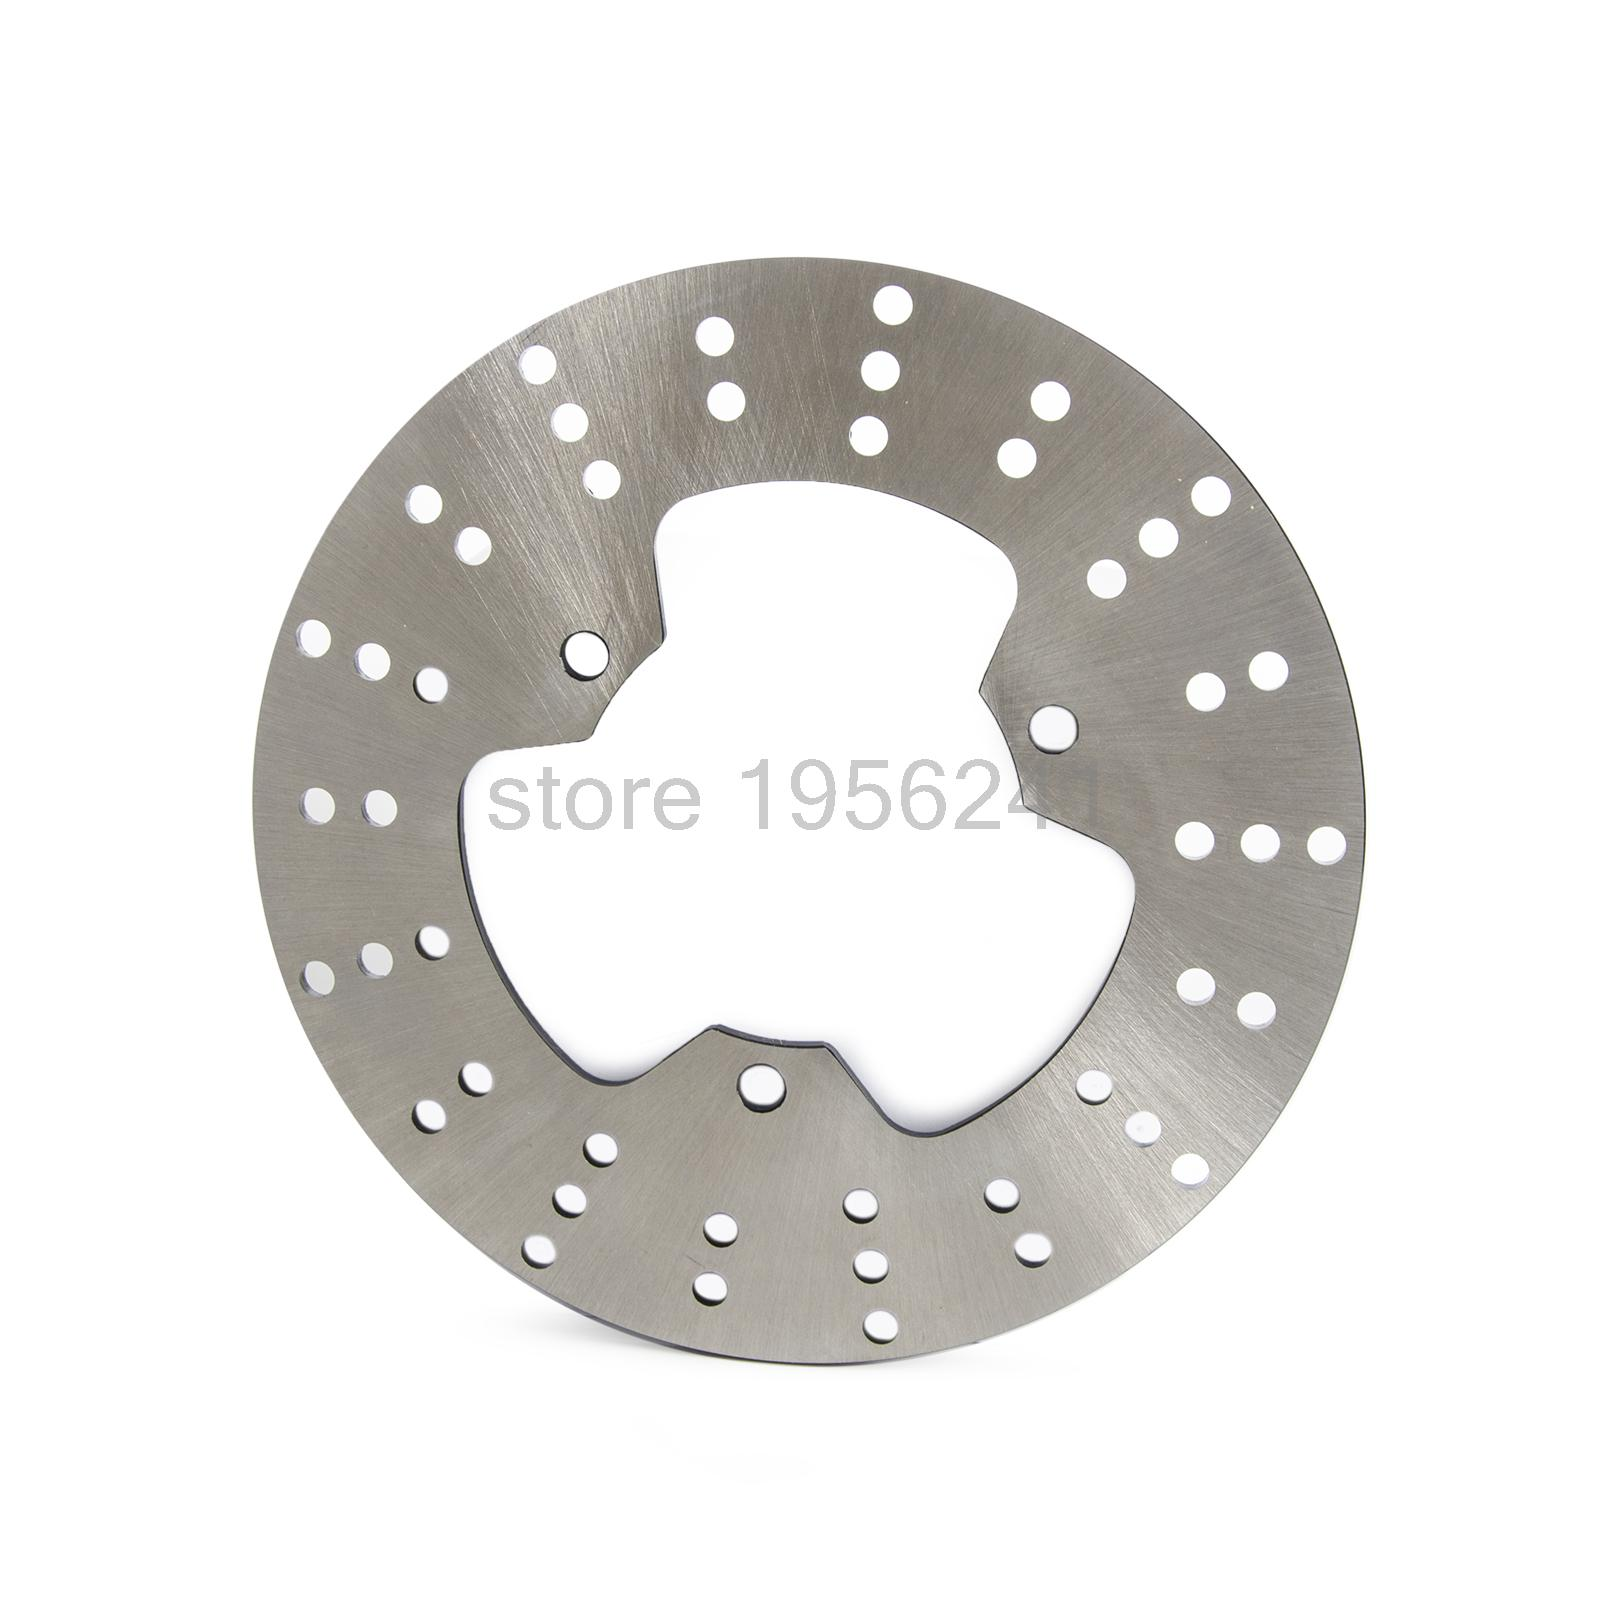 ФОТО Motorcycle Rear  Rotor Brake Disc For Yamaha TZR125 TZR150 TZR250 TDR125 TDR250 FZR250R TZ250 FX250 SDR200 NEW